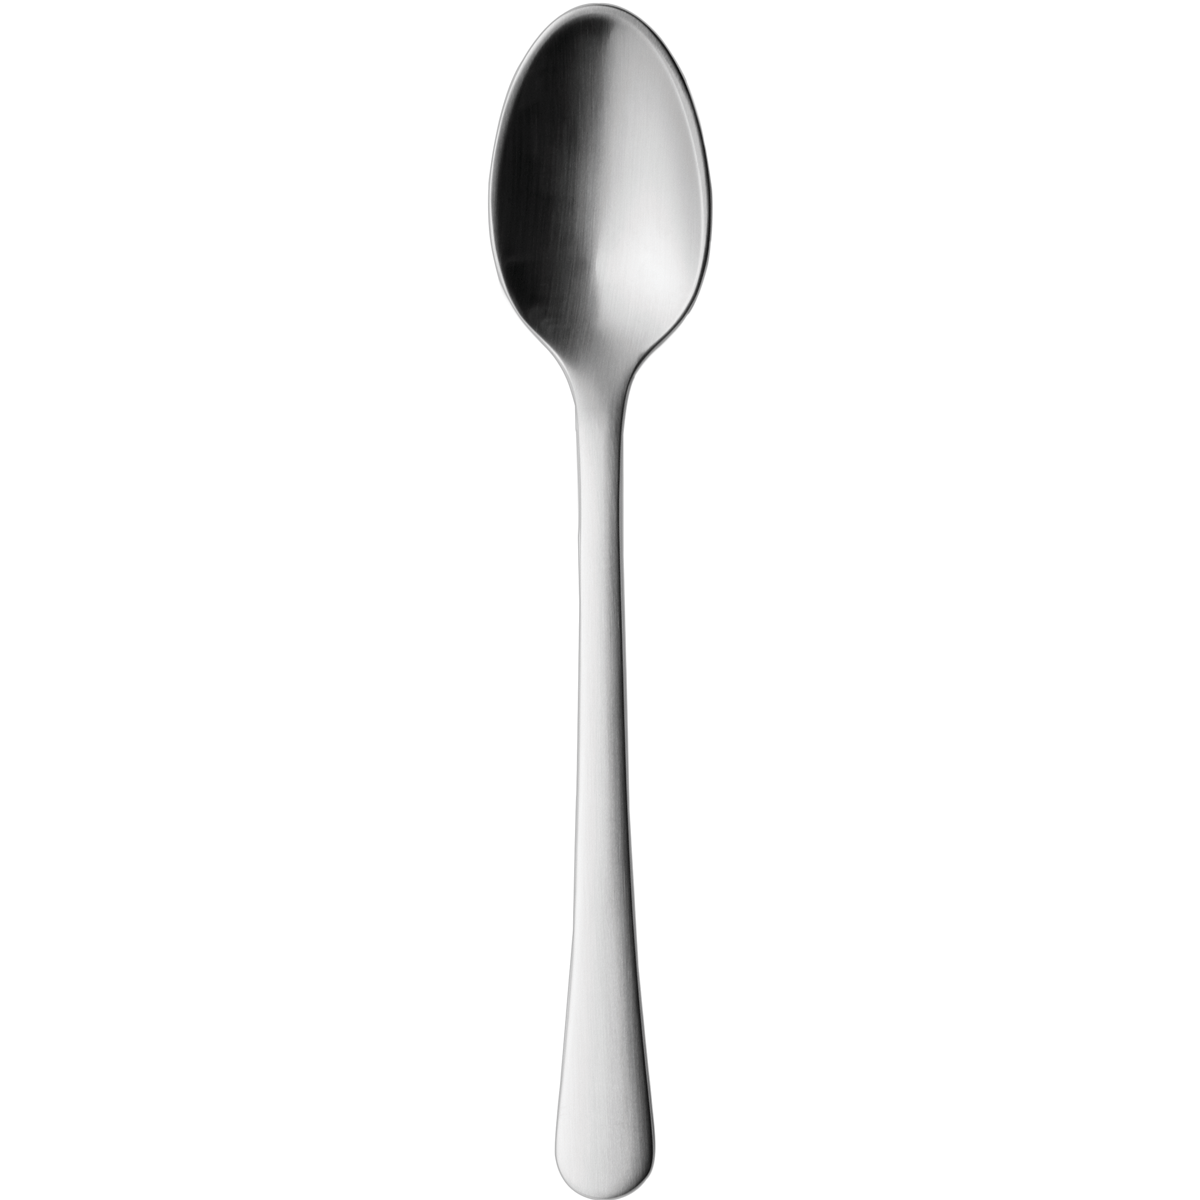 Vector spoon tablespoon. Png image download free